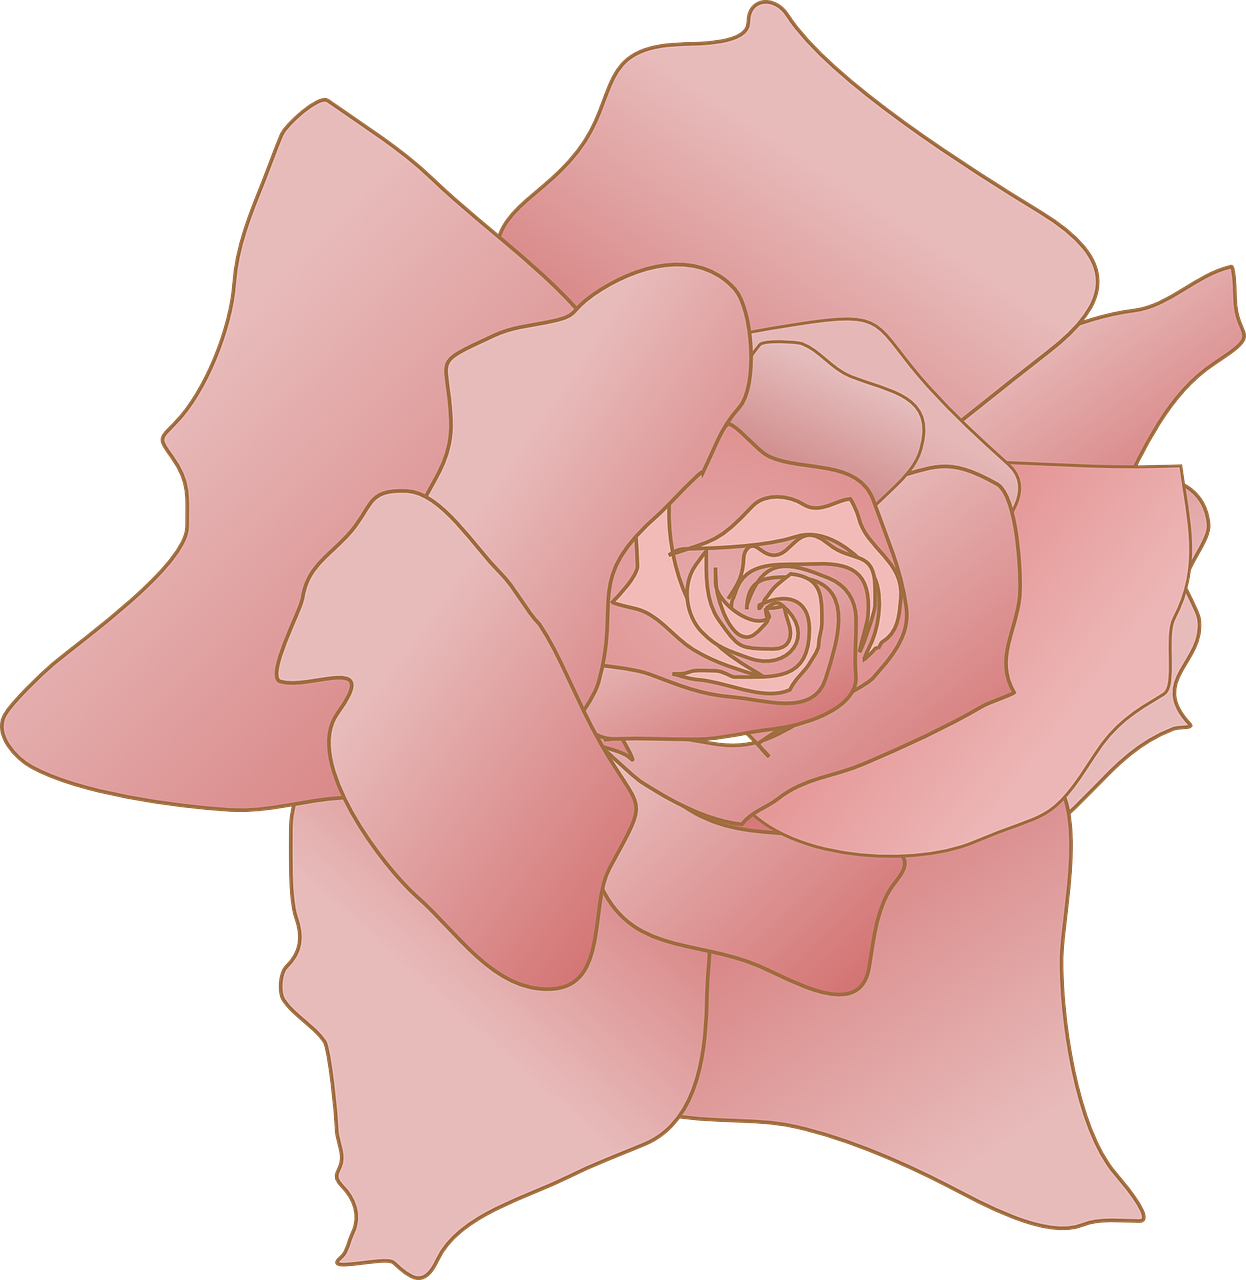 Bookmark drawing rose. The best drawings of